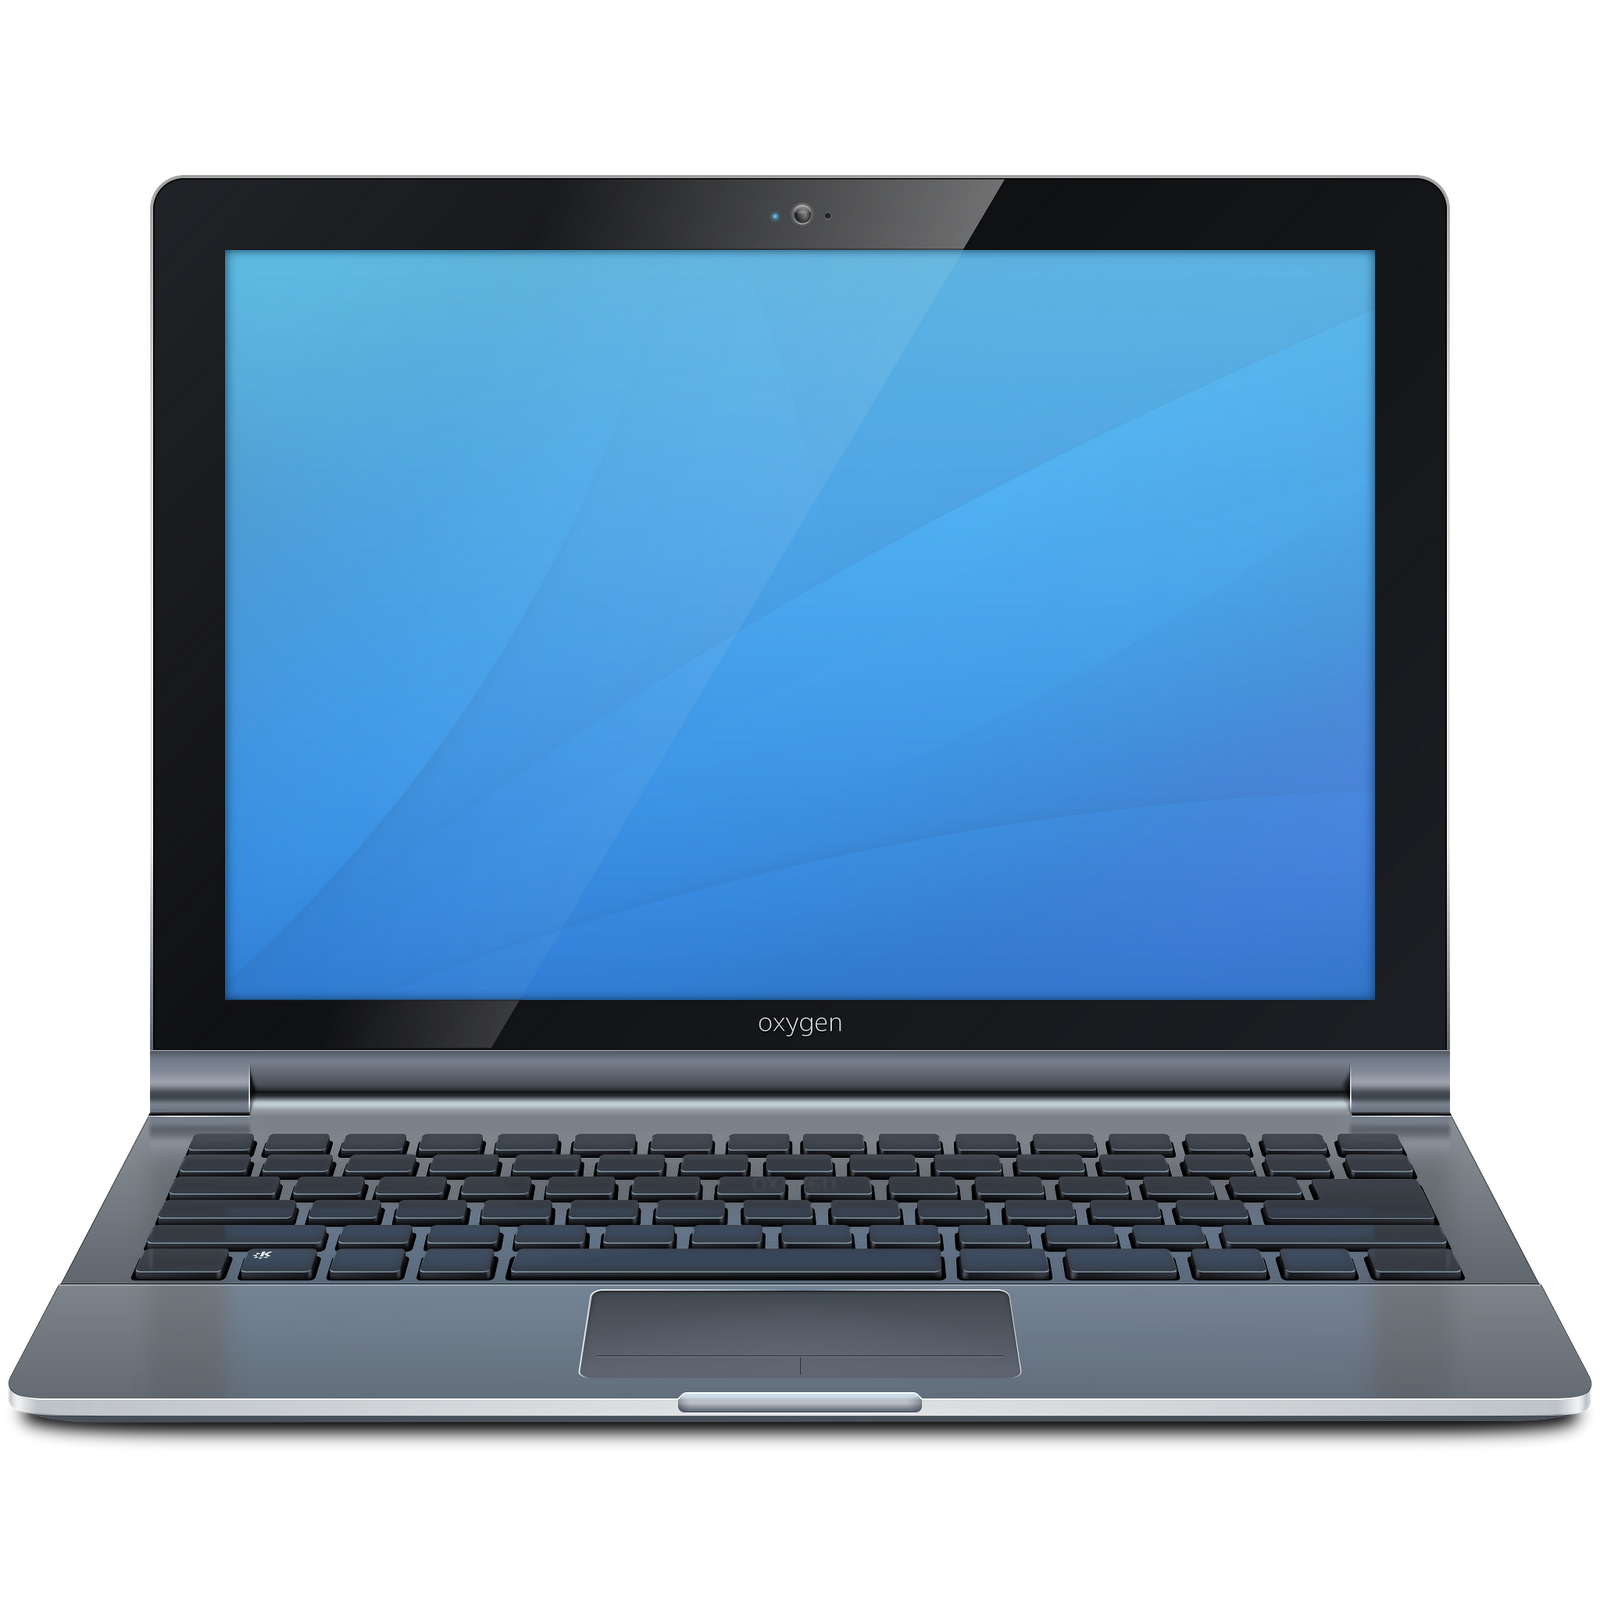 Download Laptop Computer Icon HQ PNG Image | FreePNGImg